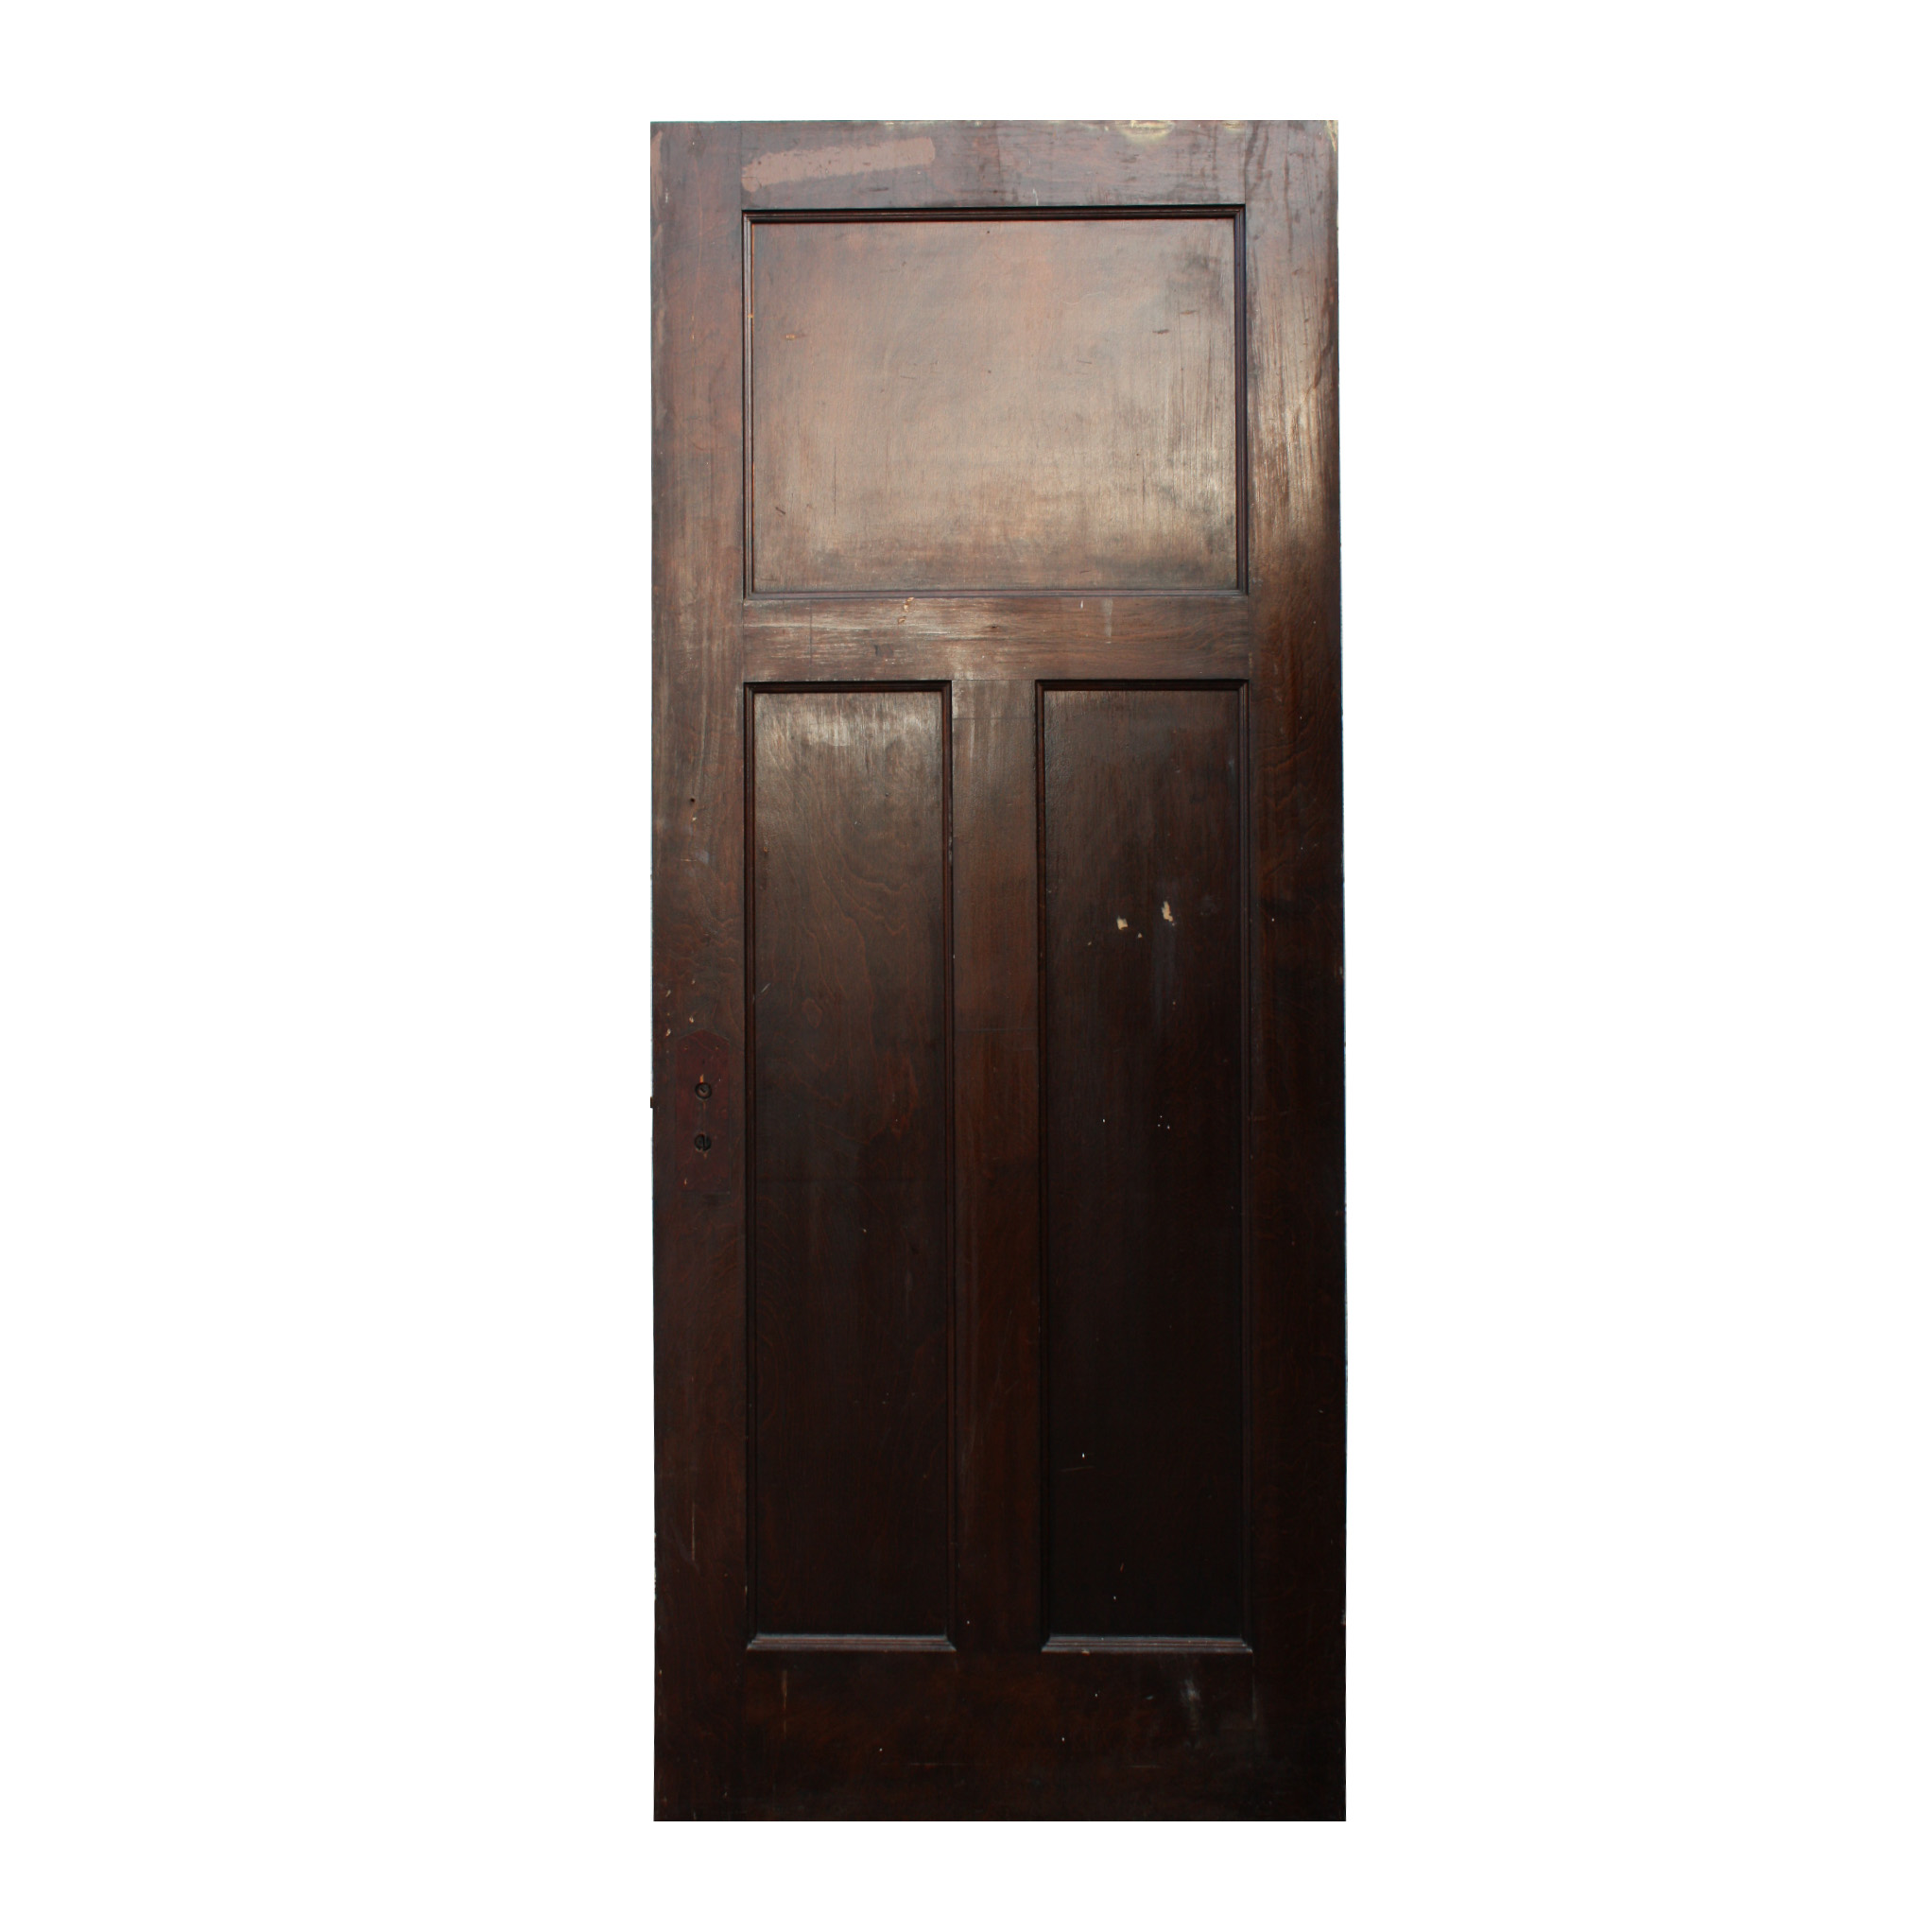 Antique three panel solid wood door stained finish nid27 for Solid wood doors for sale